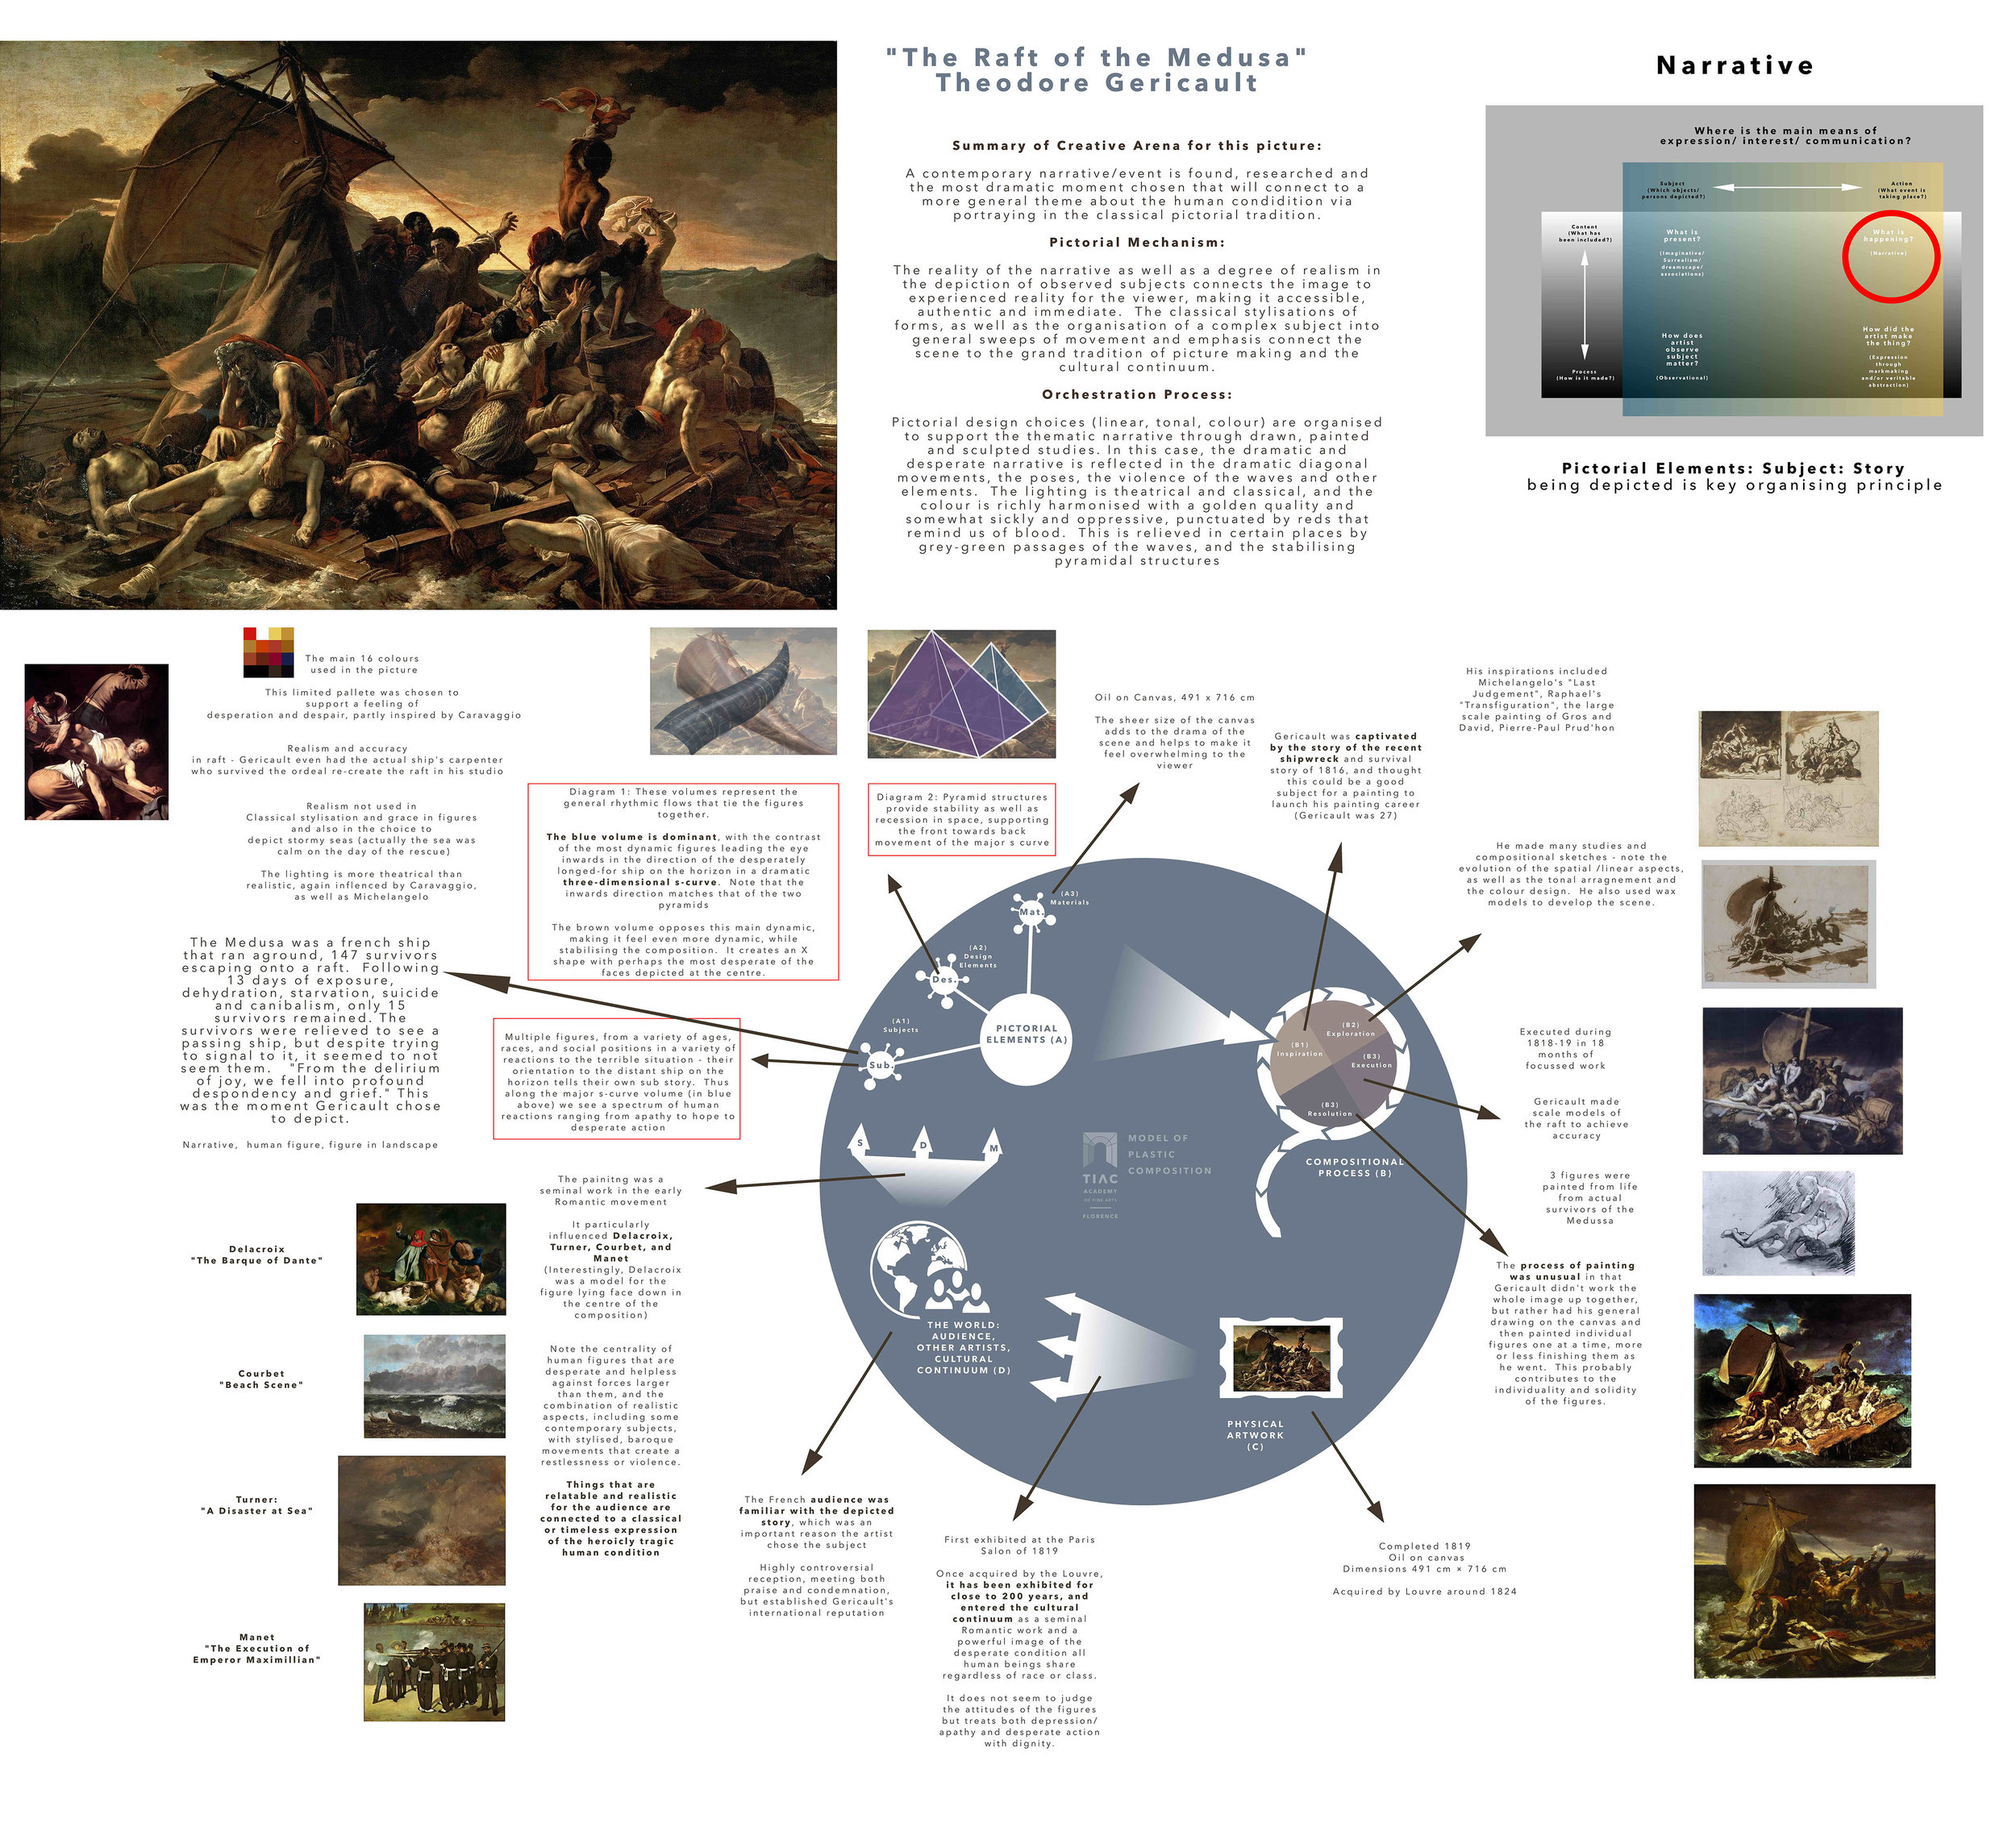 """An analysis of Gericault's """"The Raft of the Medusa"""" using the Model of Plastic composition , attempting to articulate the Creative Arena used by Gericault that you could try for yourself (or some variation of).  Click image to download full file"""